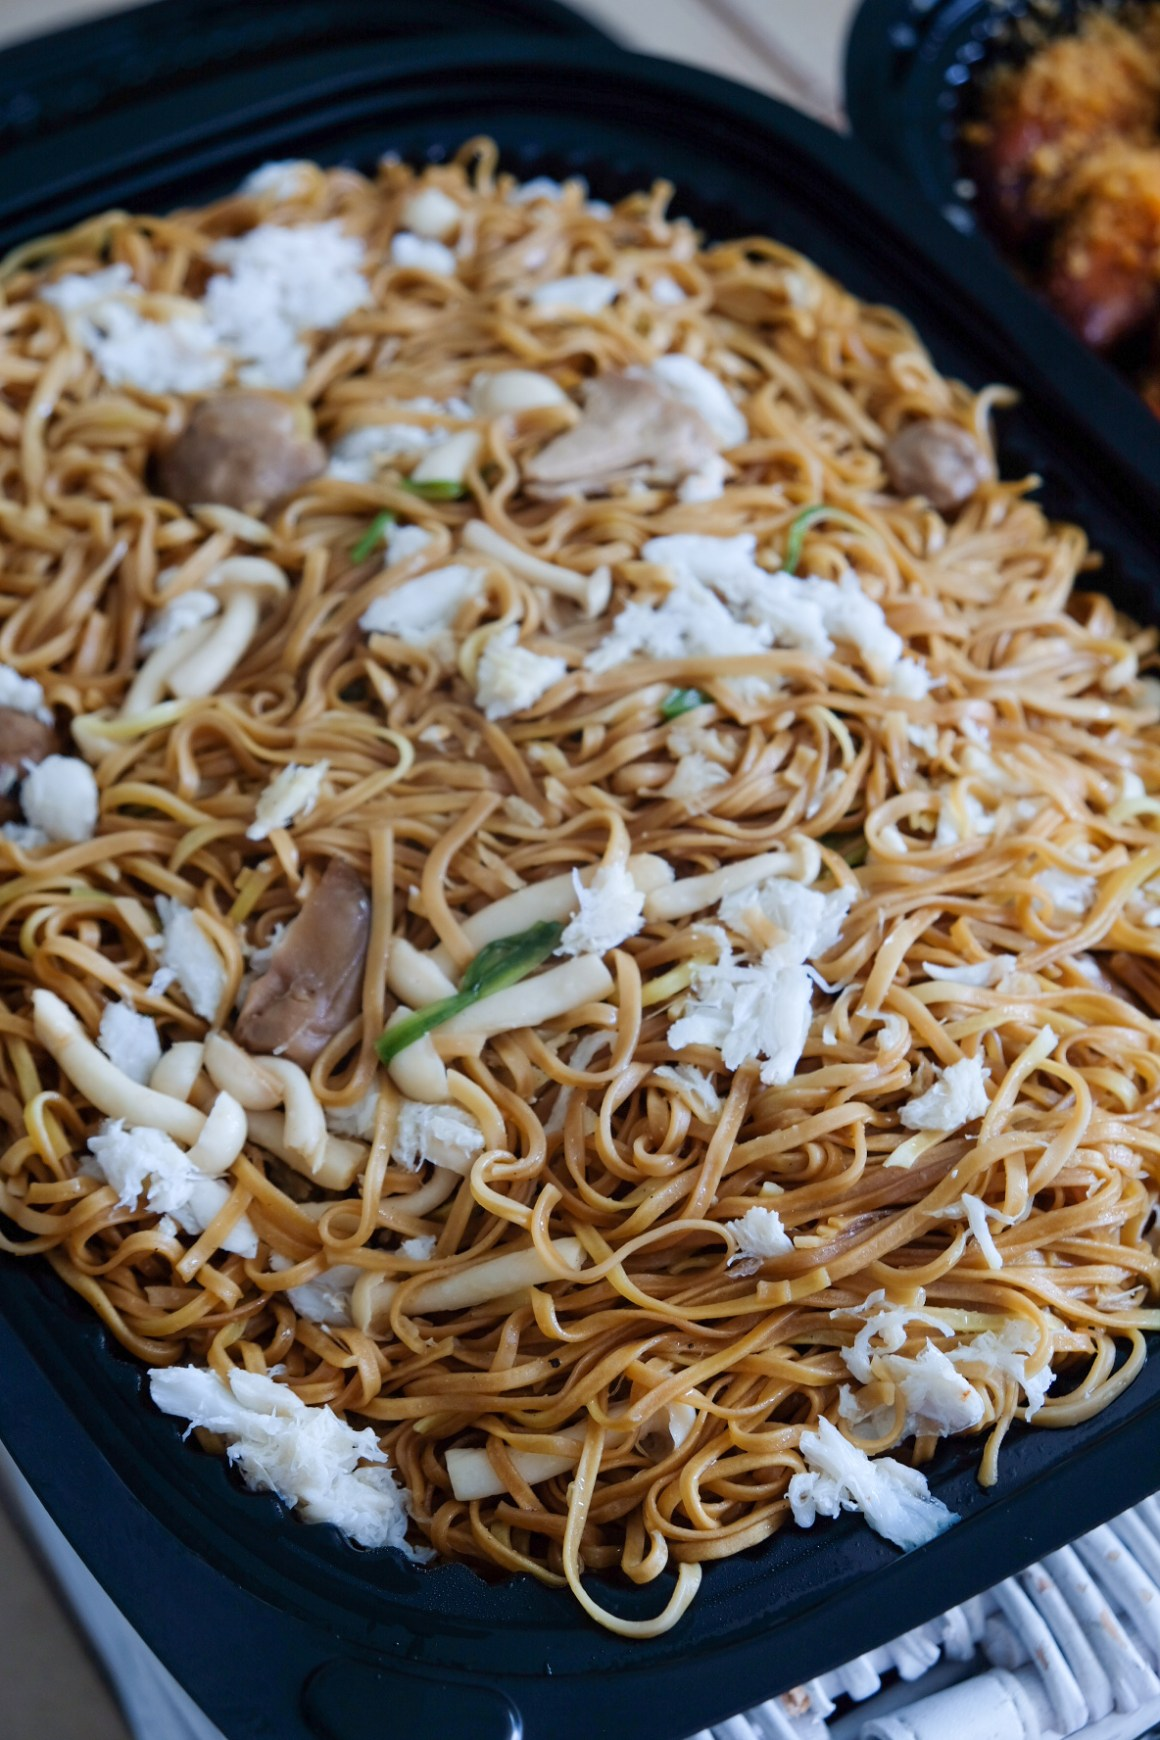 Usher 2020 Lunar New Year With Delectable Dining Options - Braised Ee Fu Noodles with Atlantic Crab Meat and Chives